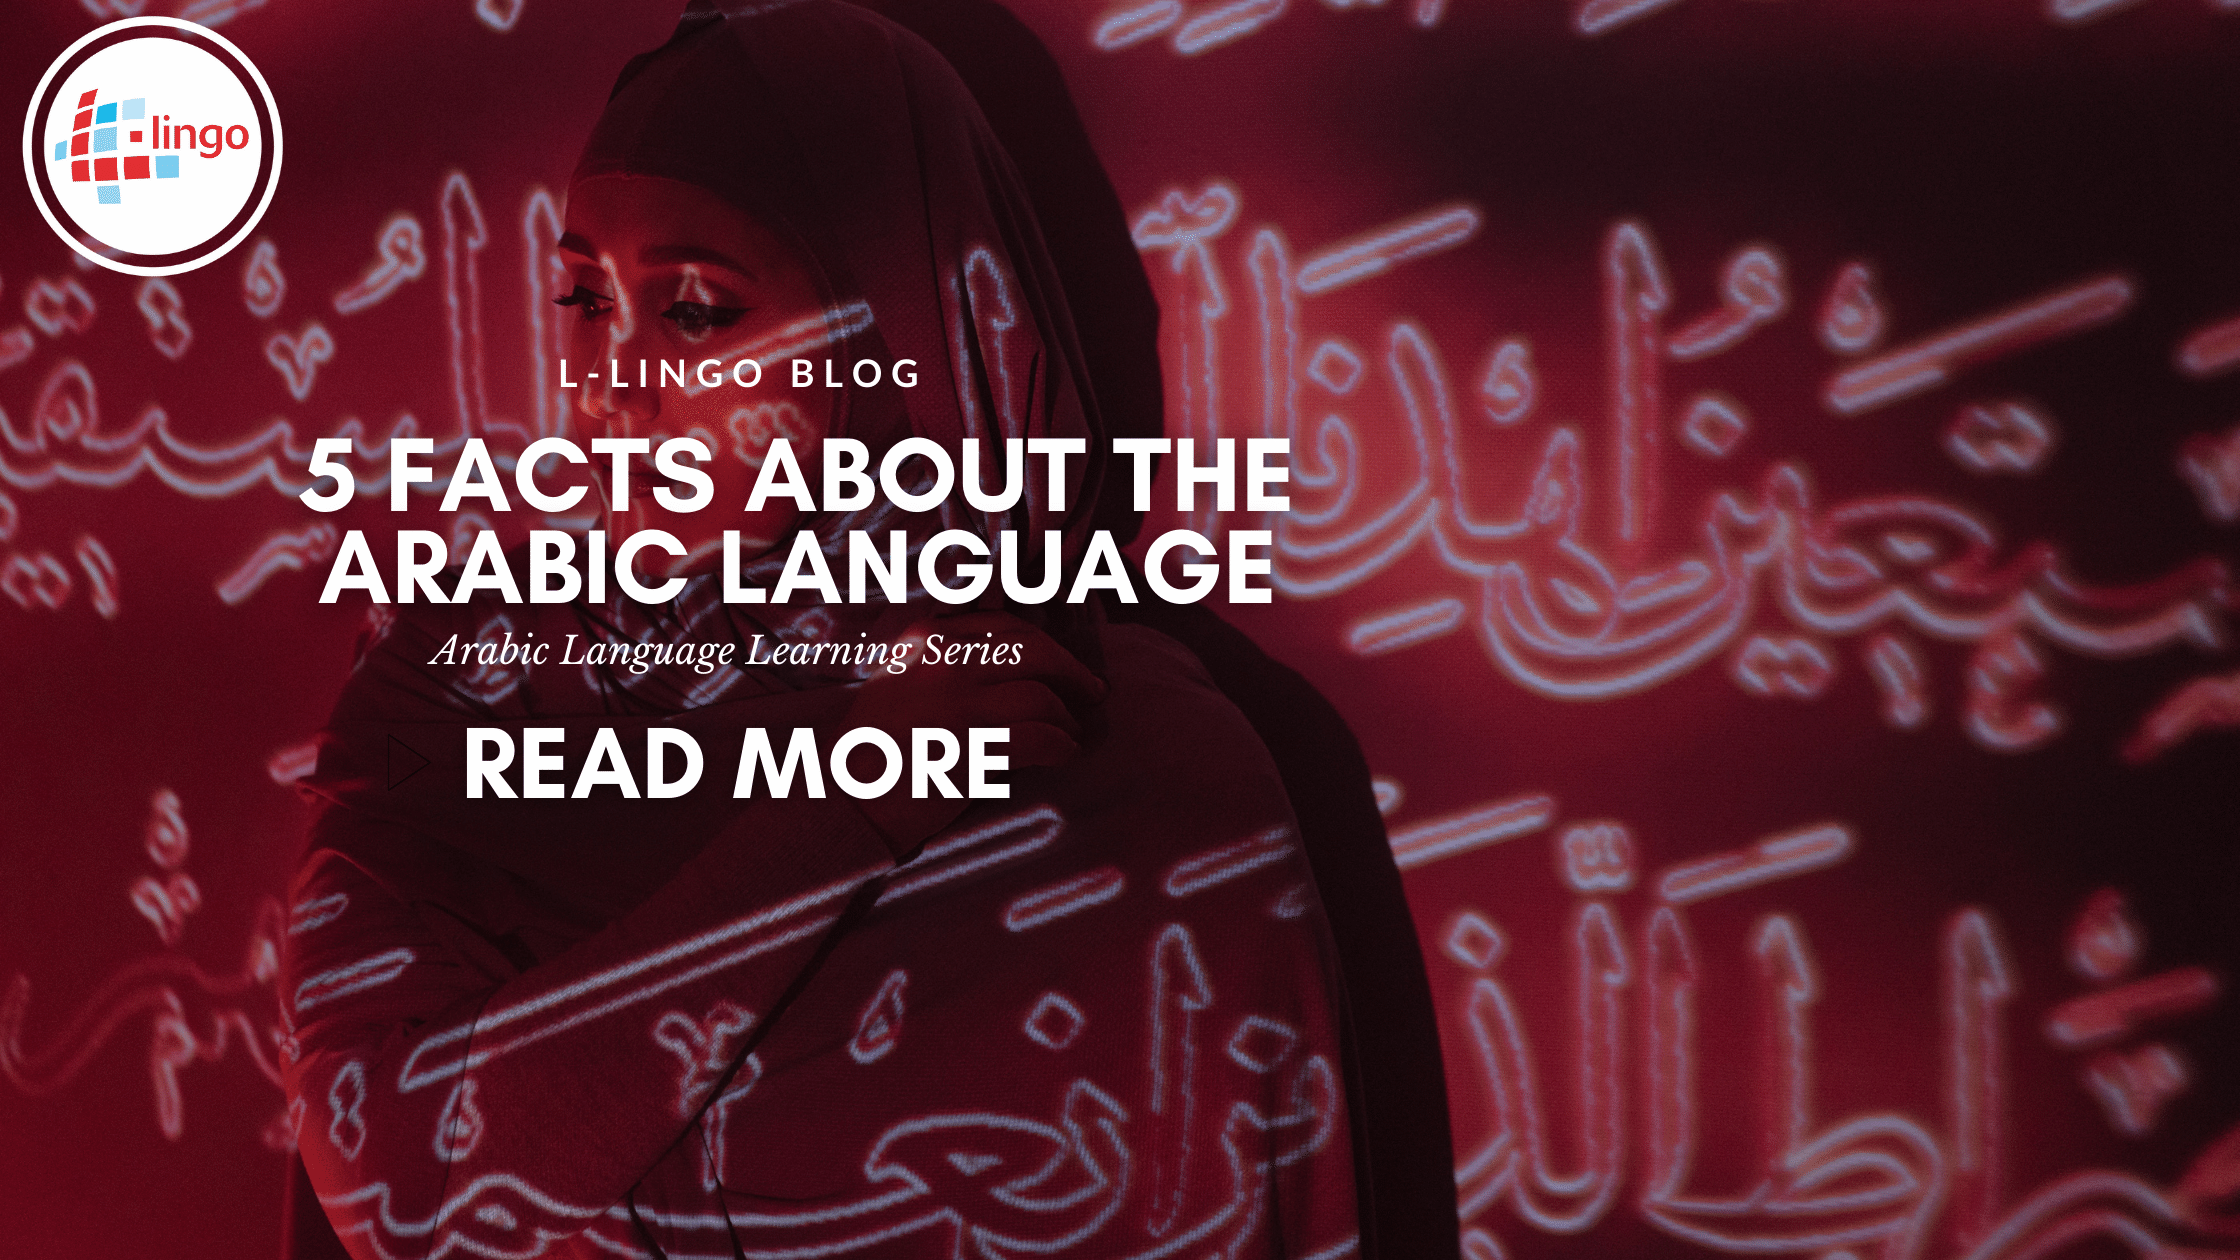 L-LINGO BLOG 5 FACTS ABOUT ARABIC